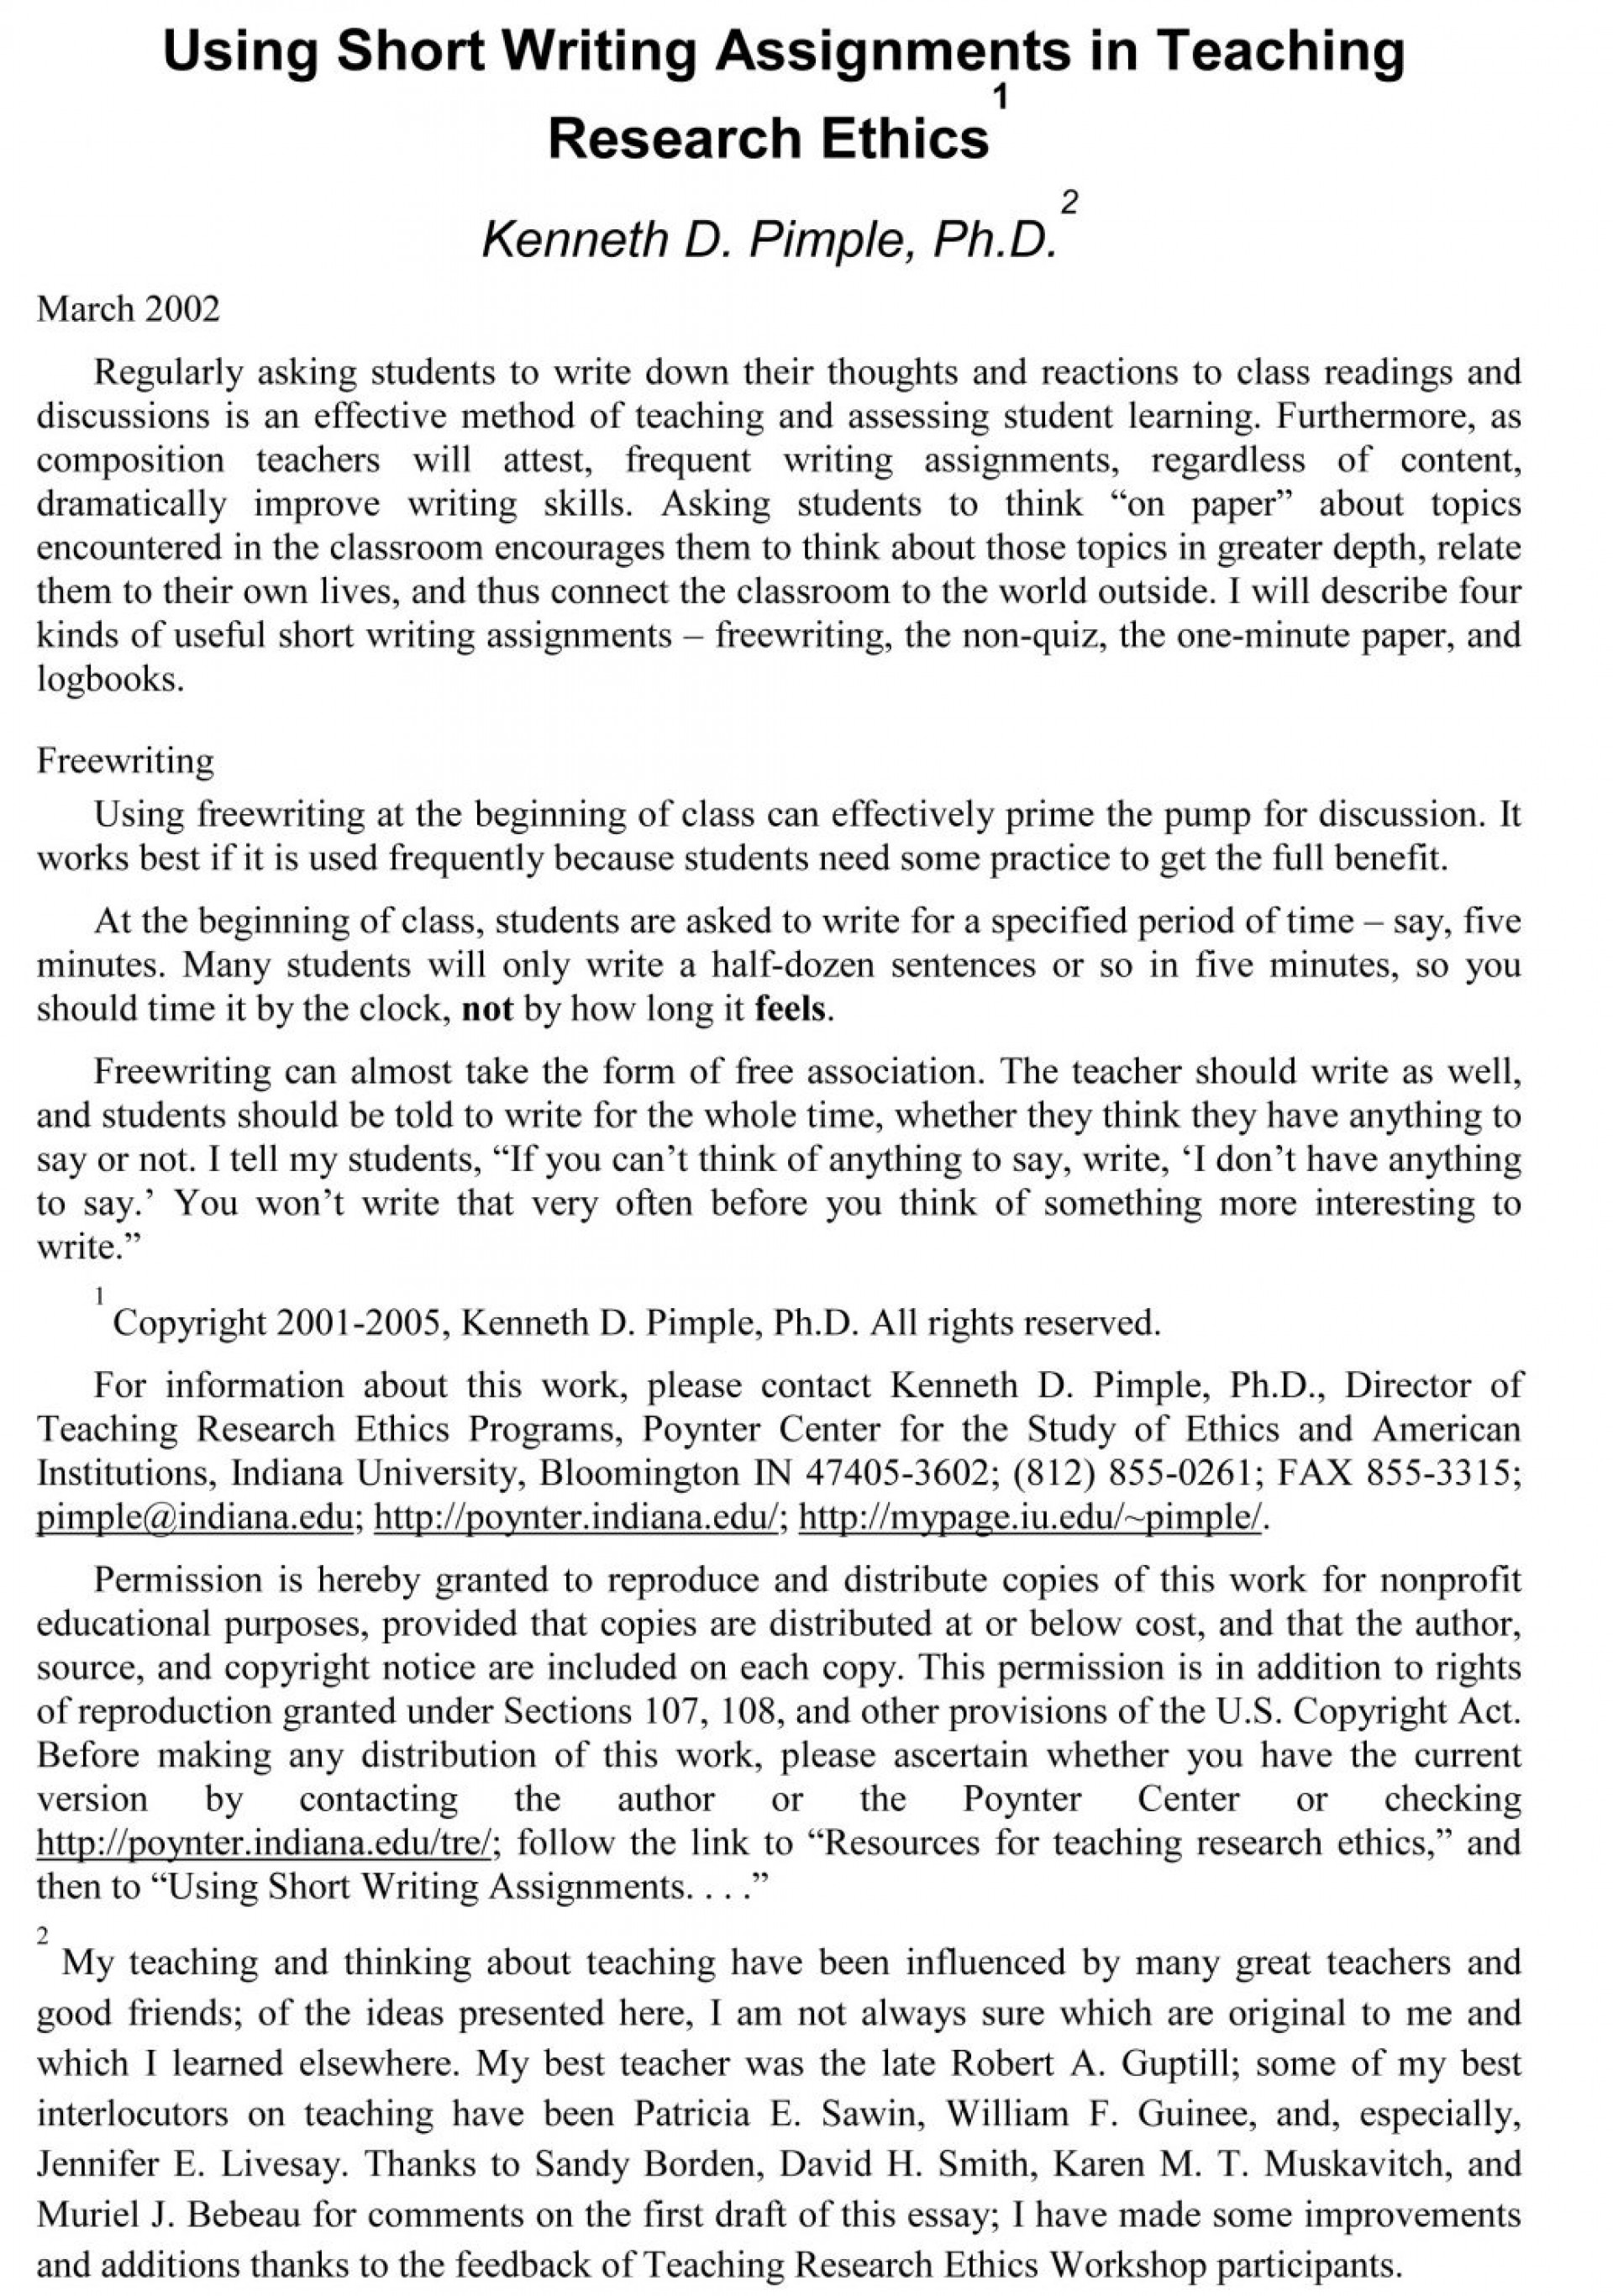 003 Essay Example I Need Help Writing An Write On My Narrative Sample Tea Paper College Admissions Research Stunning A For Free Evaluation 1920